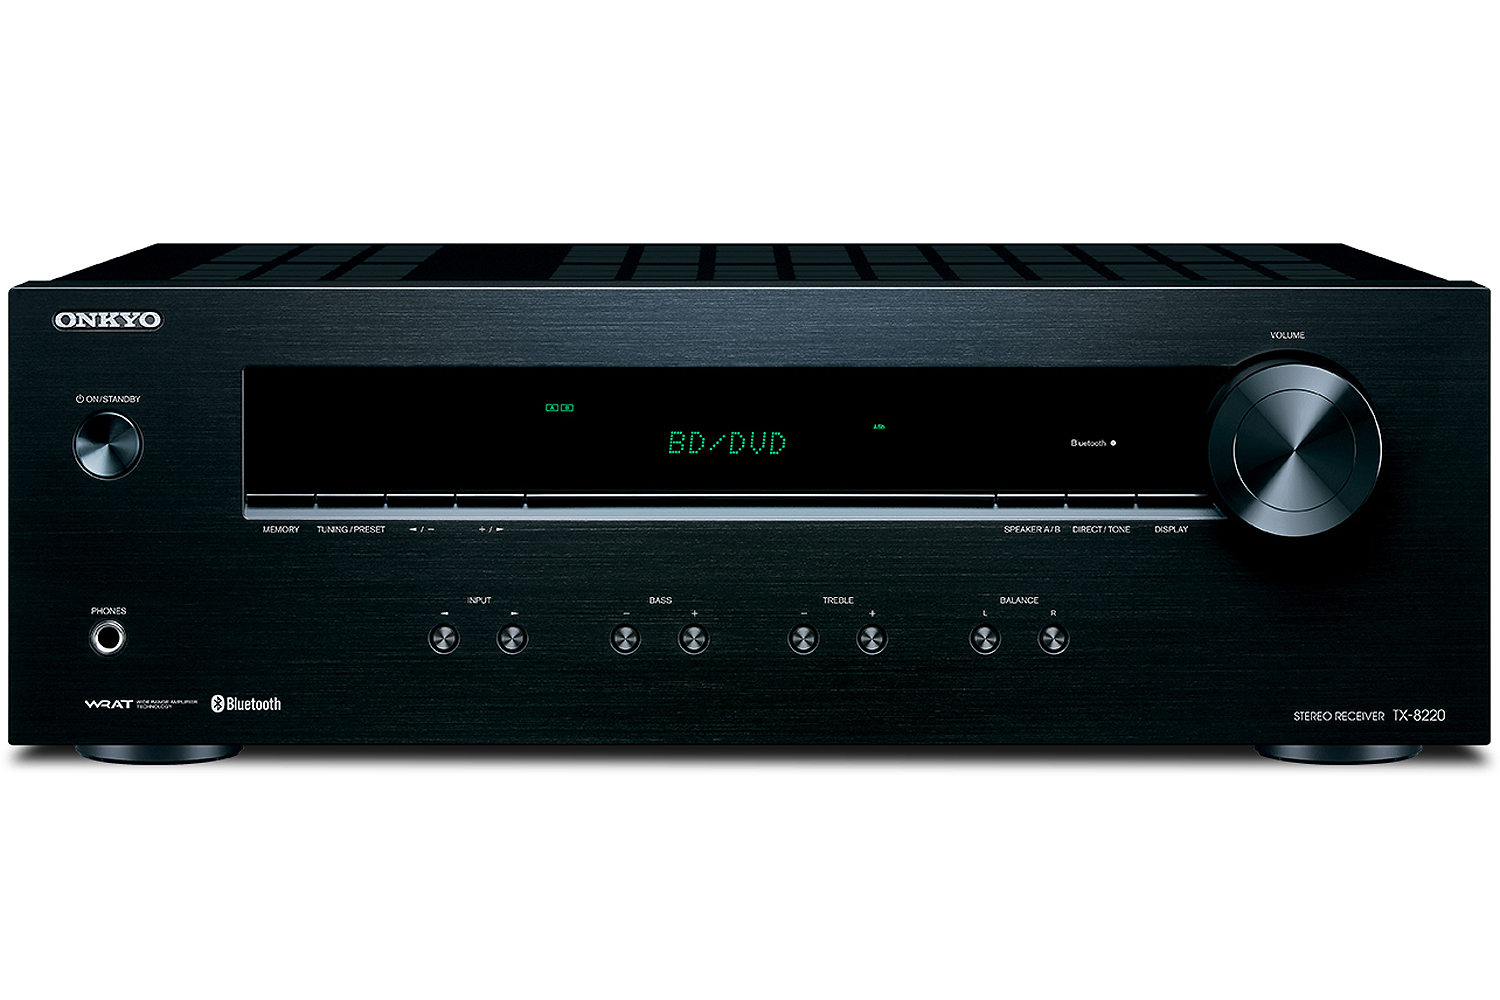 Onkyo Black Stereo Receiver With Bluetooth Tx 8220